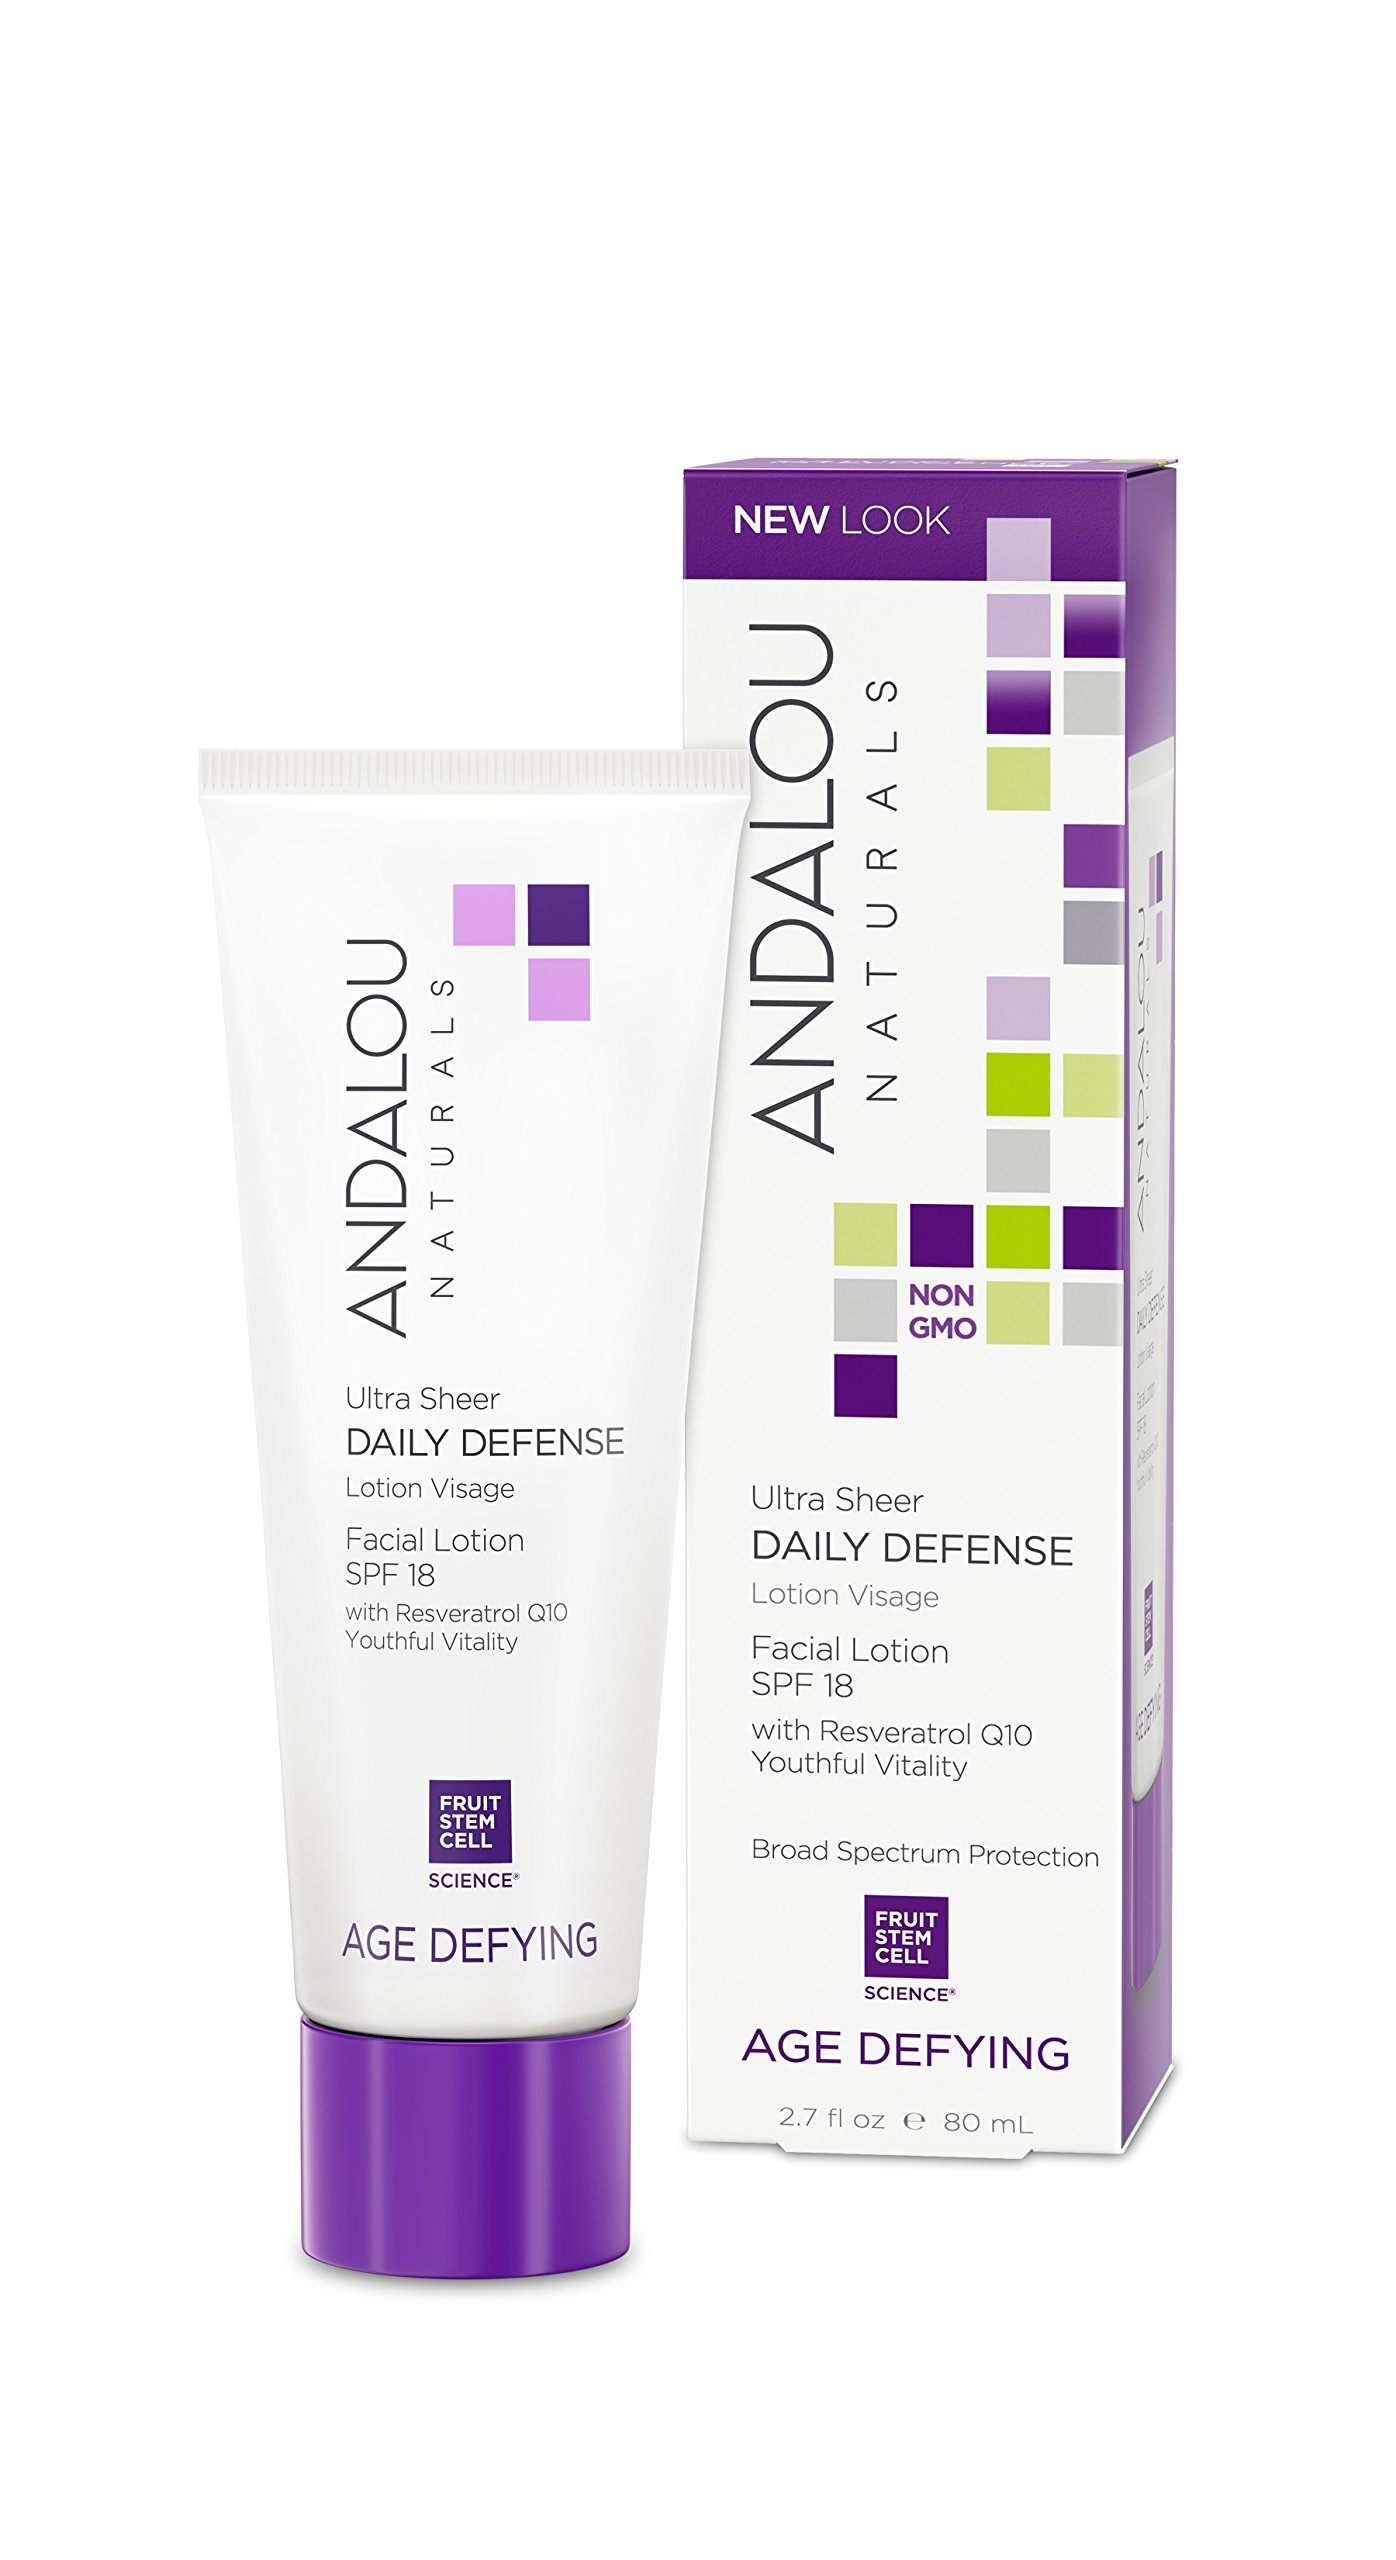 Andalou Naturals Ultra Sheer Daily Defense Facial Lotion, SPF 18, 2.7 oz, with Resveratrol CoQ10 and Antioxidants, Lightweight, Hydrating Facial Moisturizer by Andalou Naturals